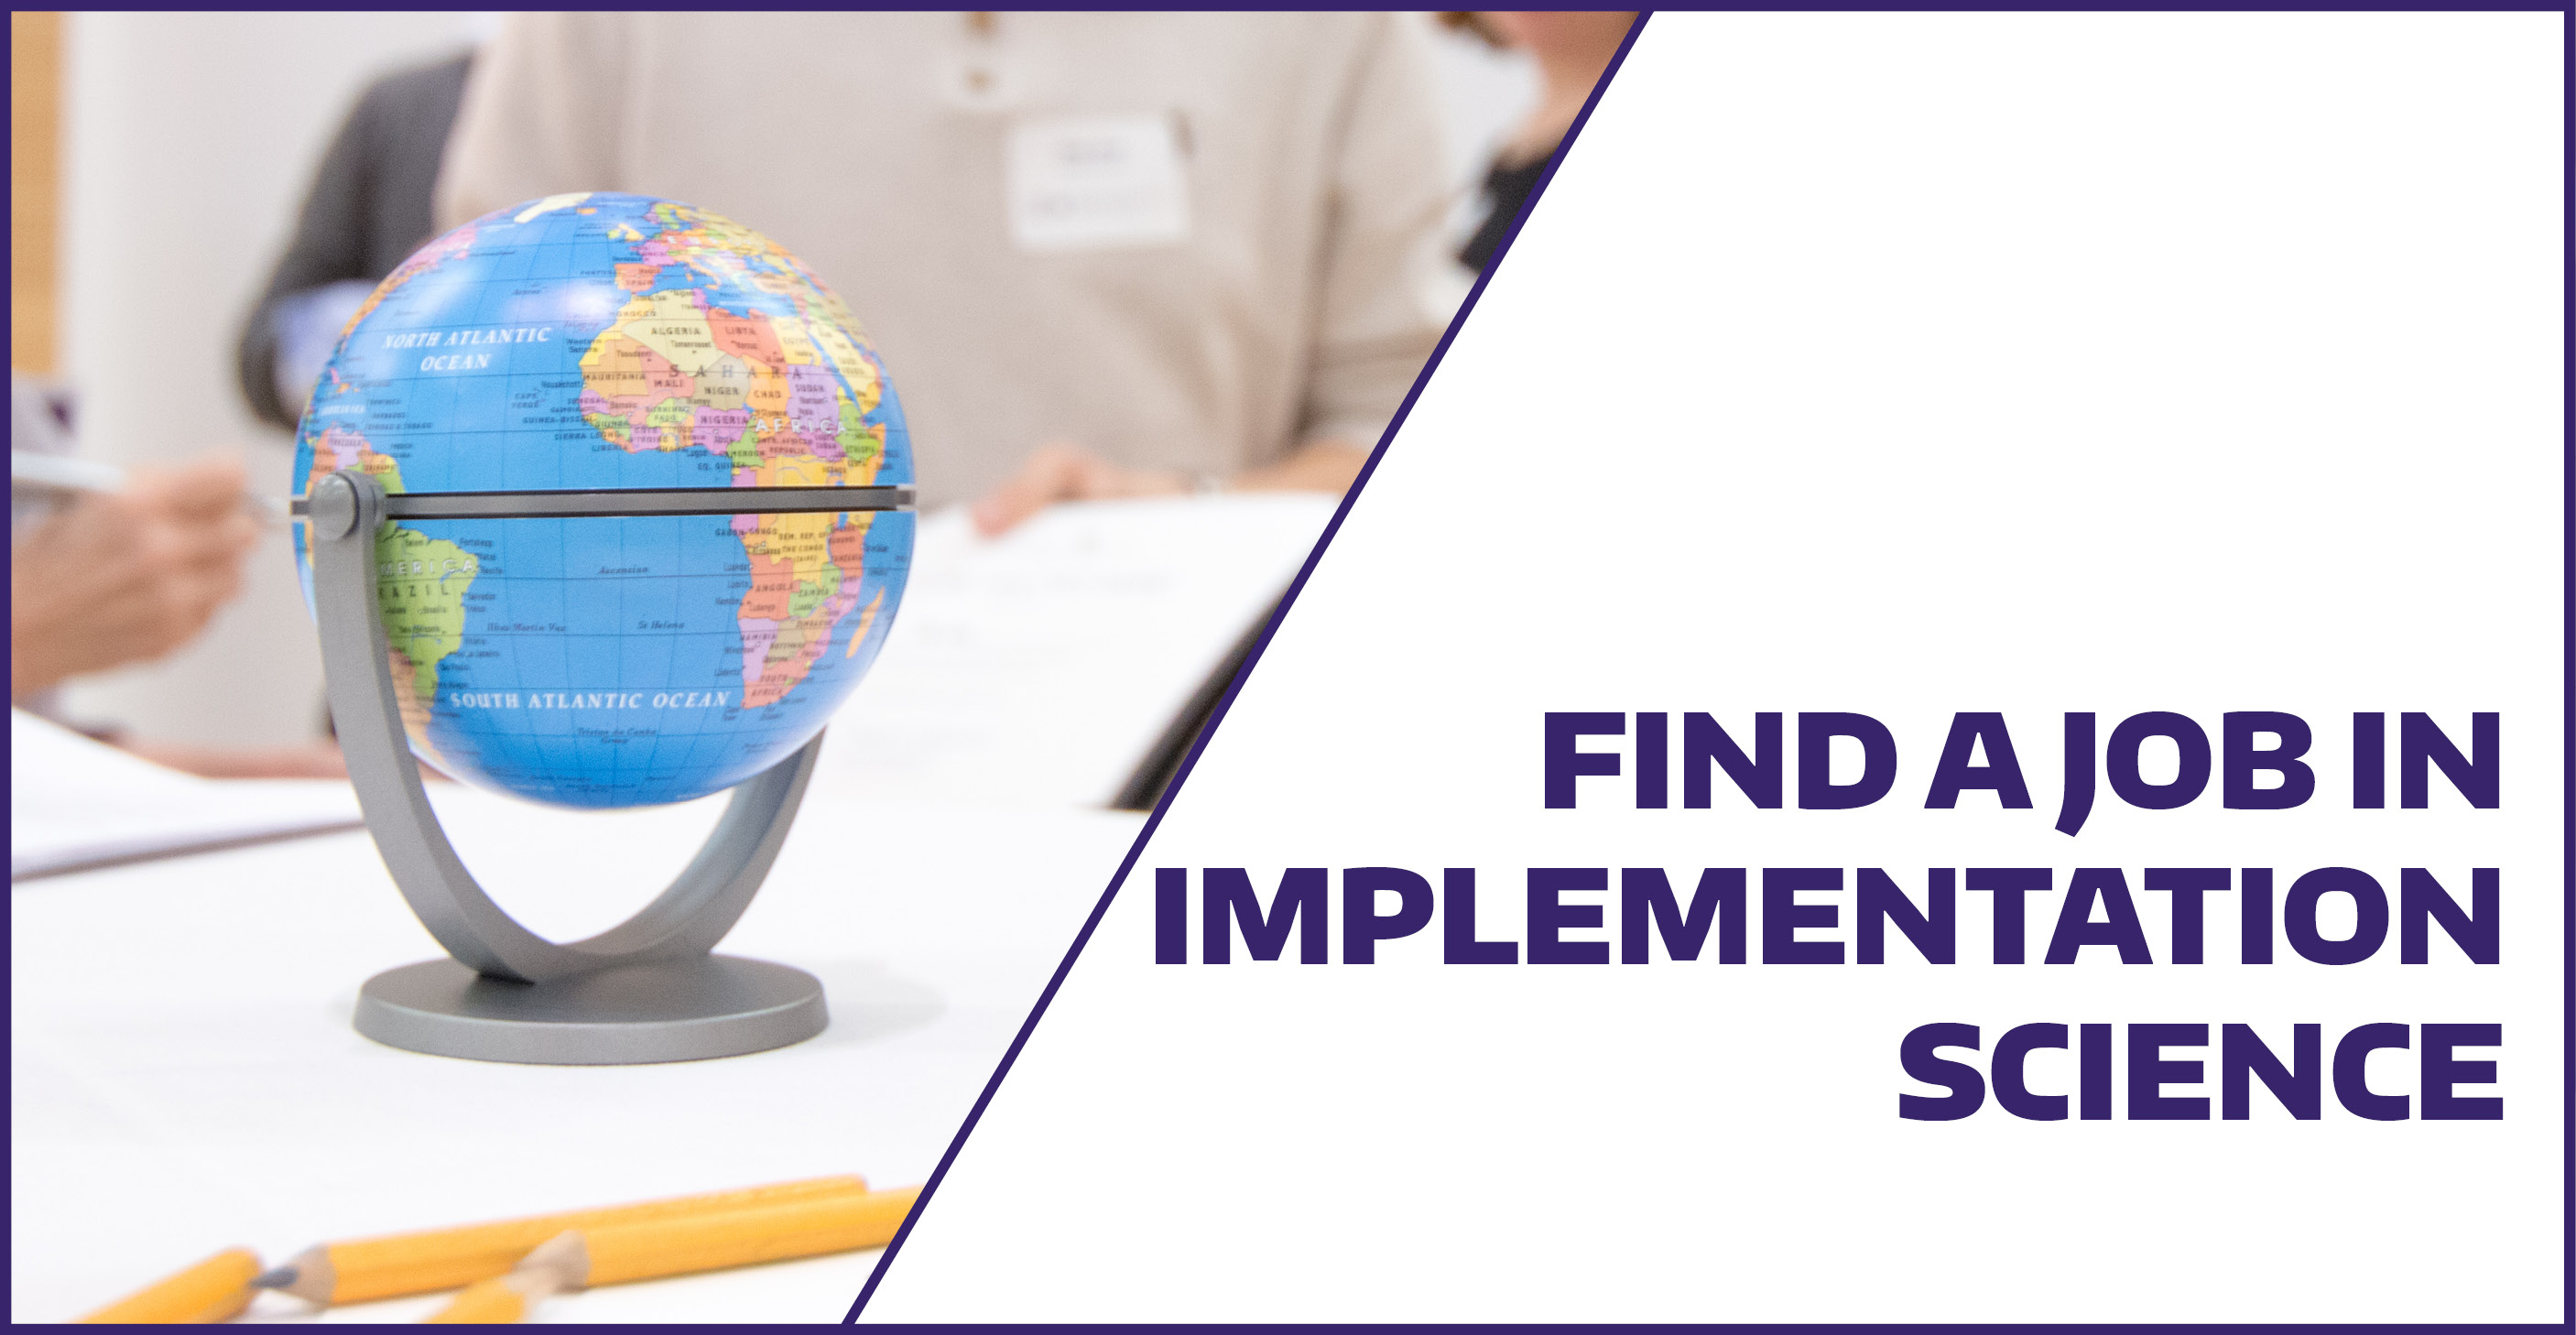 Find a job in implementation science